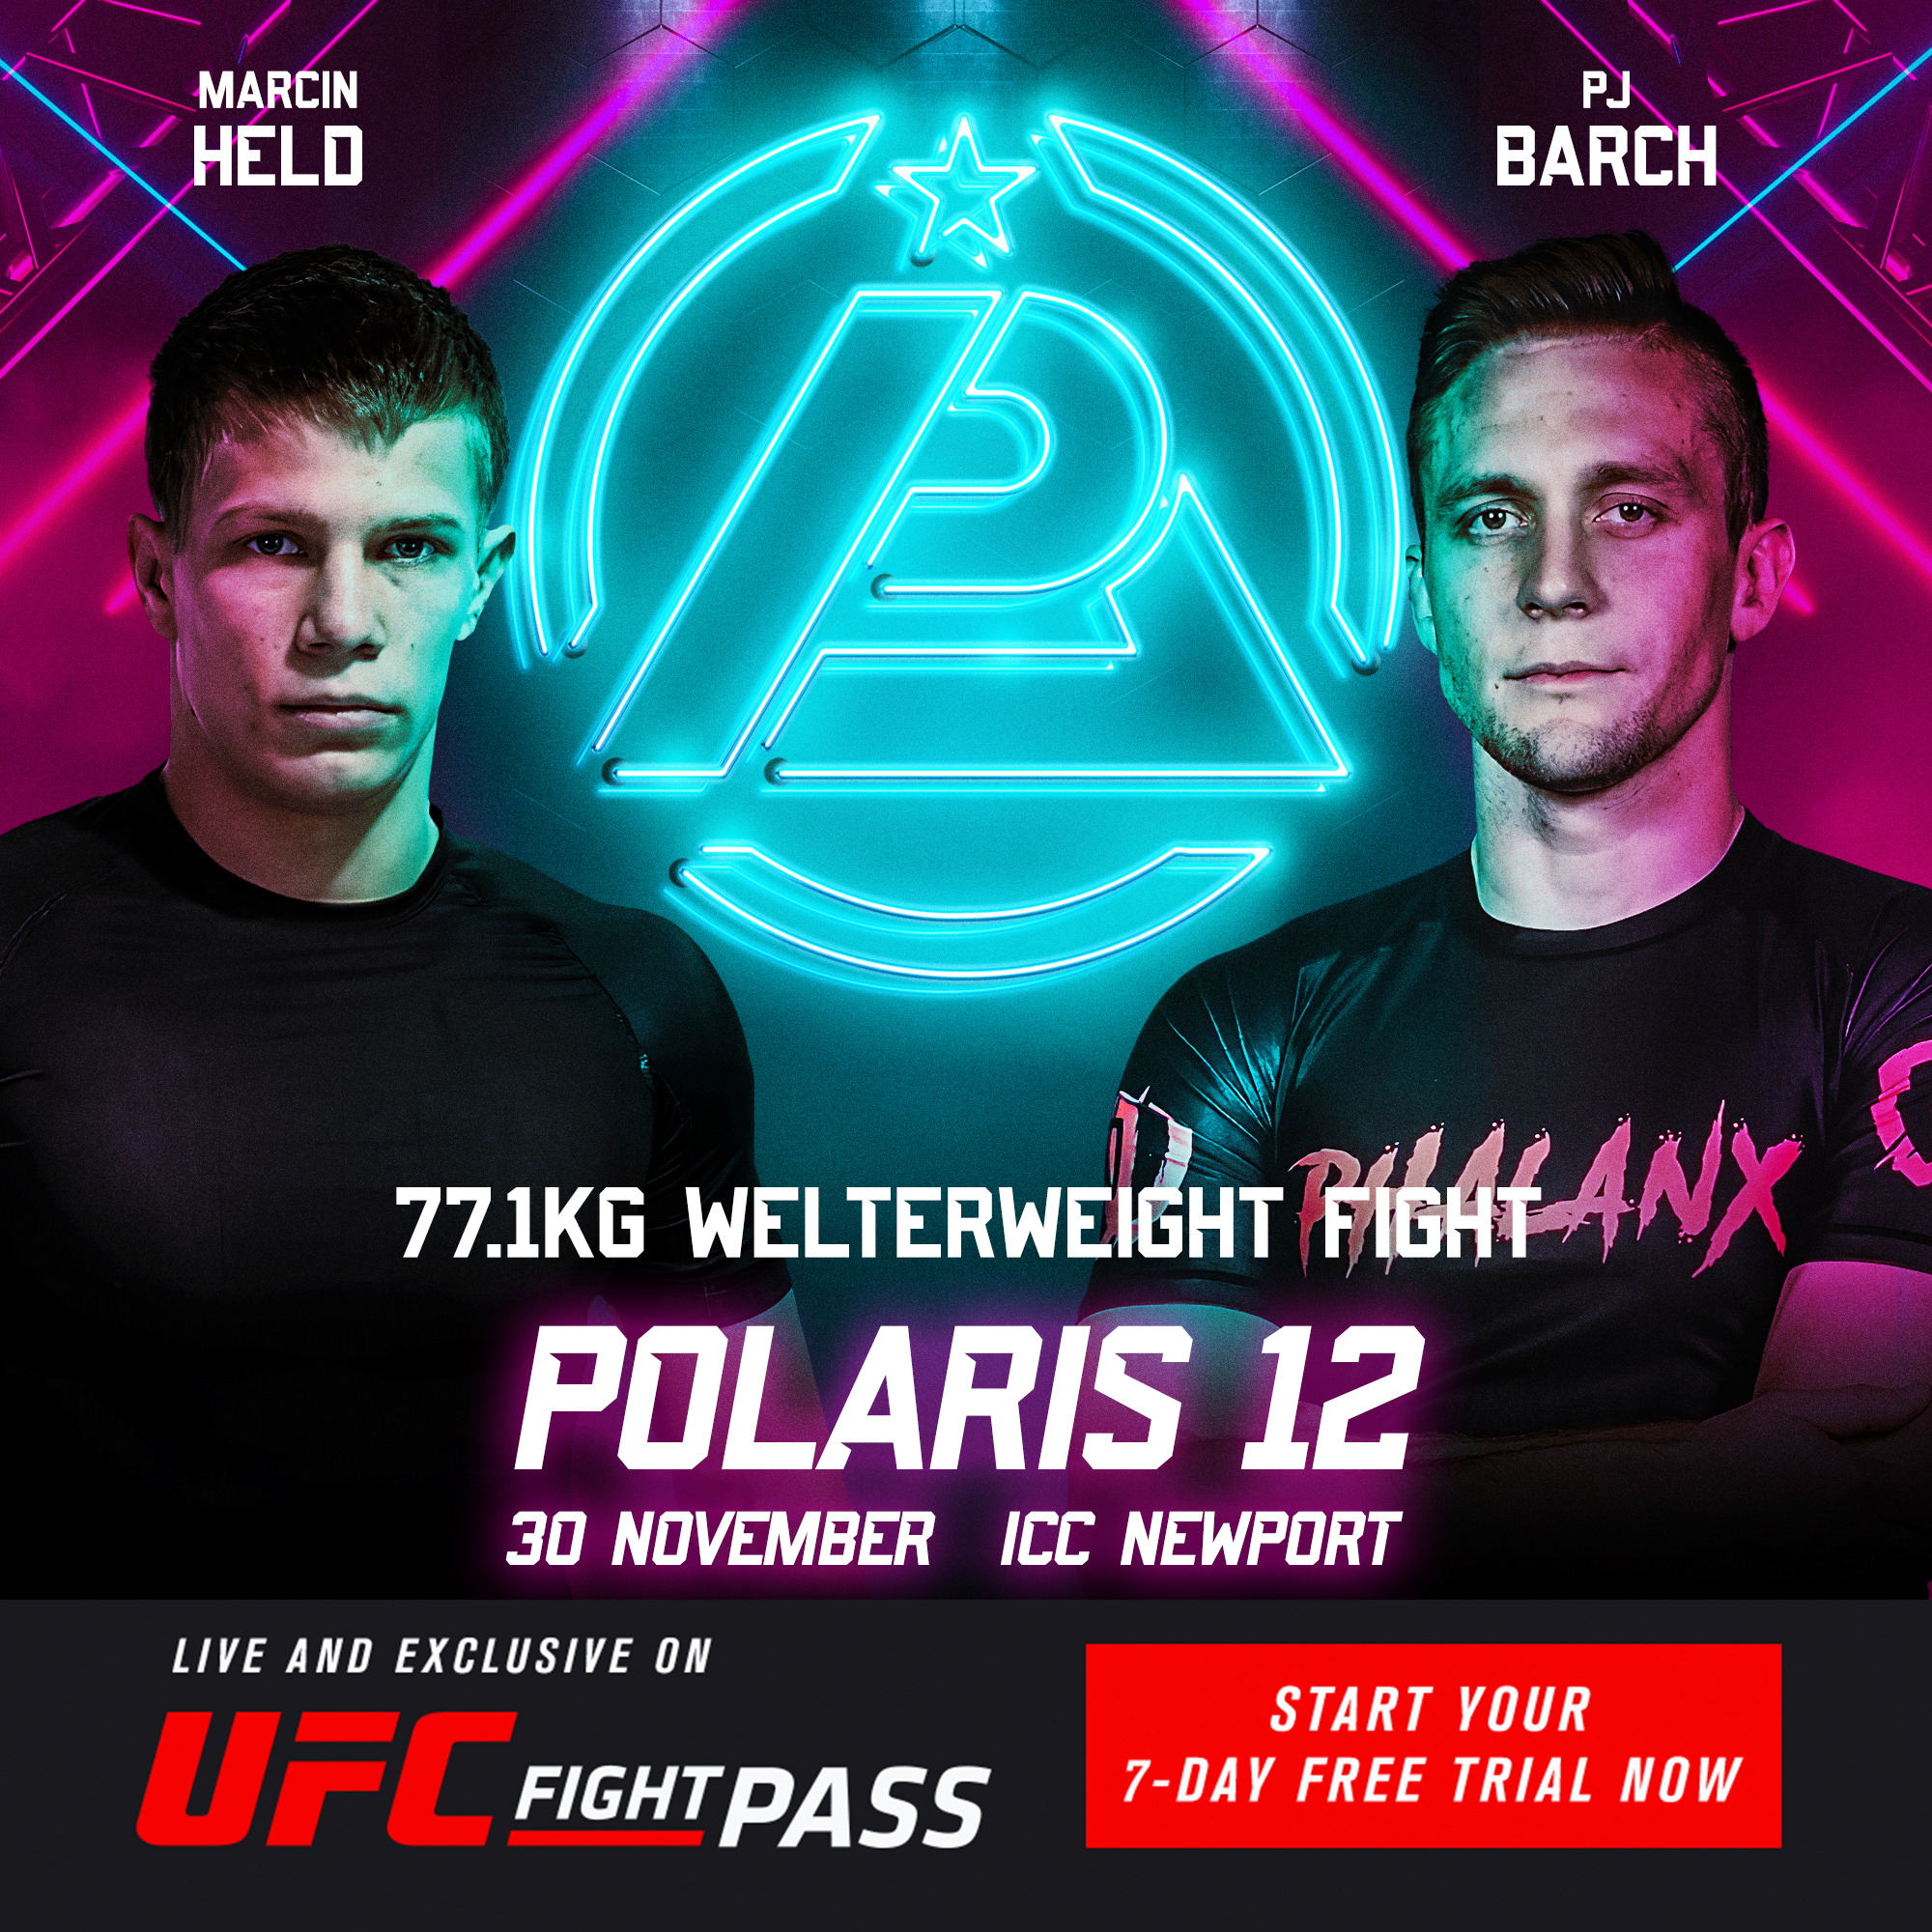 Polaris 12 - Marcin Held VS PJ Barch